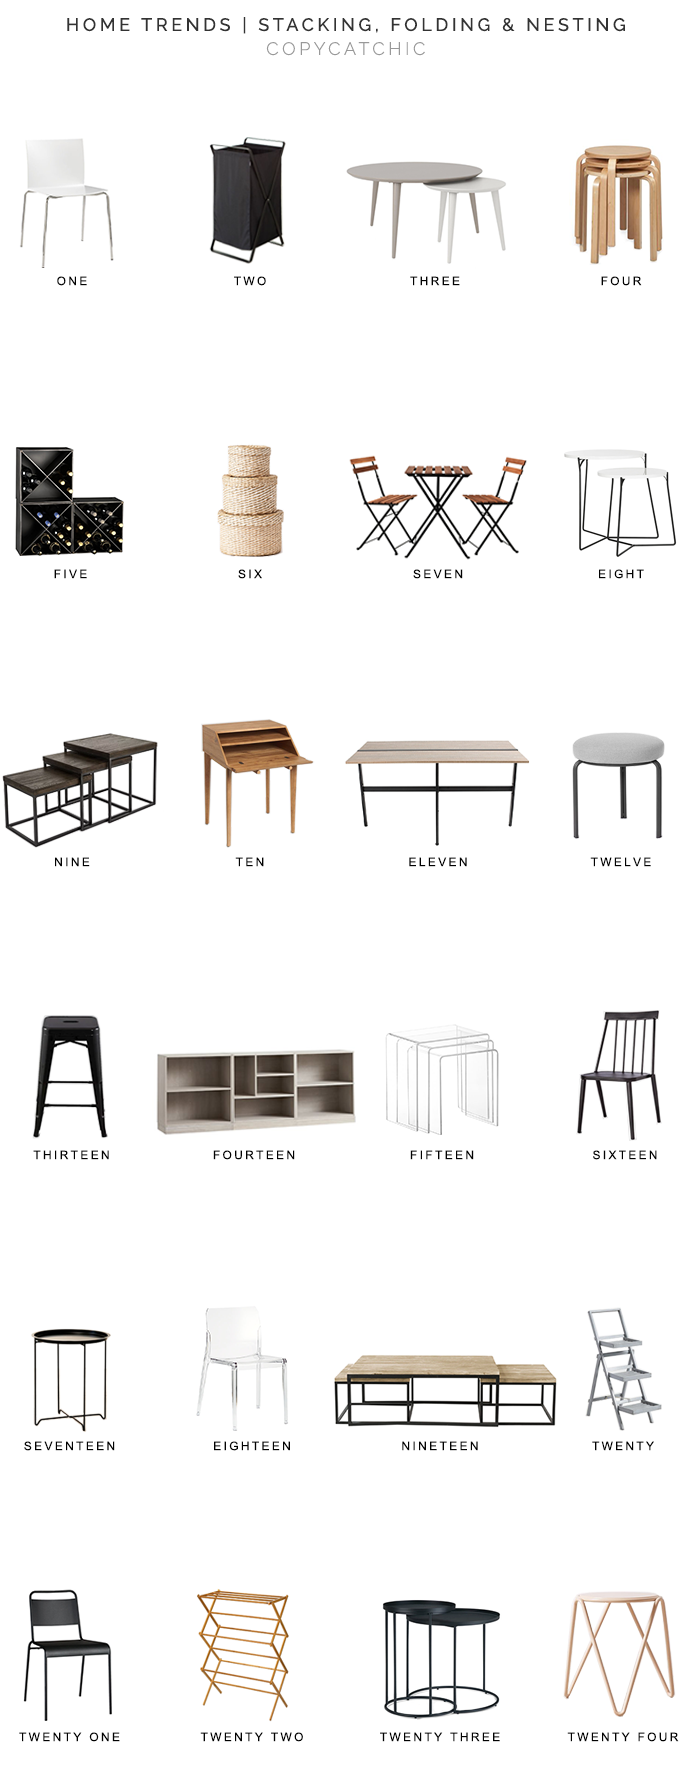 nesting tables for less, stacking furniture for less, folding furniture for less, copycatchic luxe living for less, budget home decor and design, daily finds, home trends, sales, budget travel and room redos